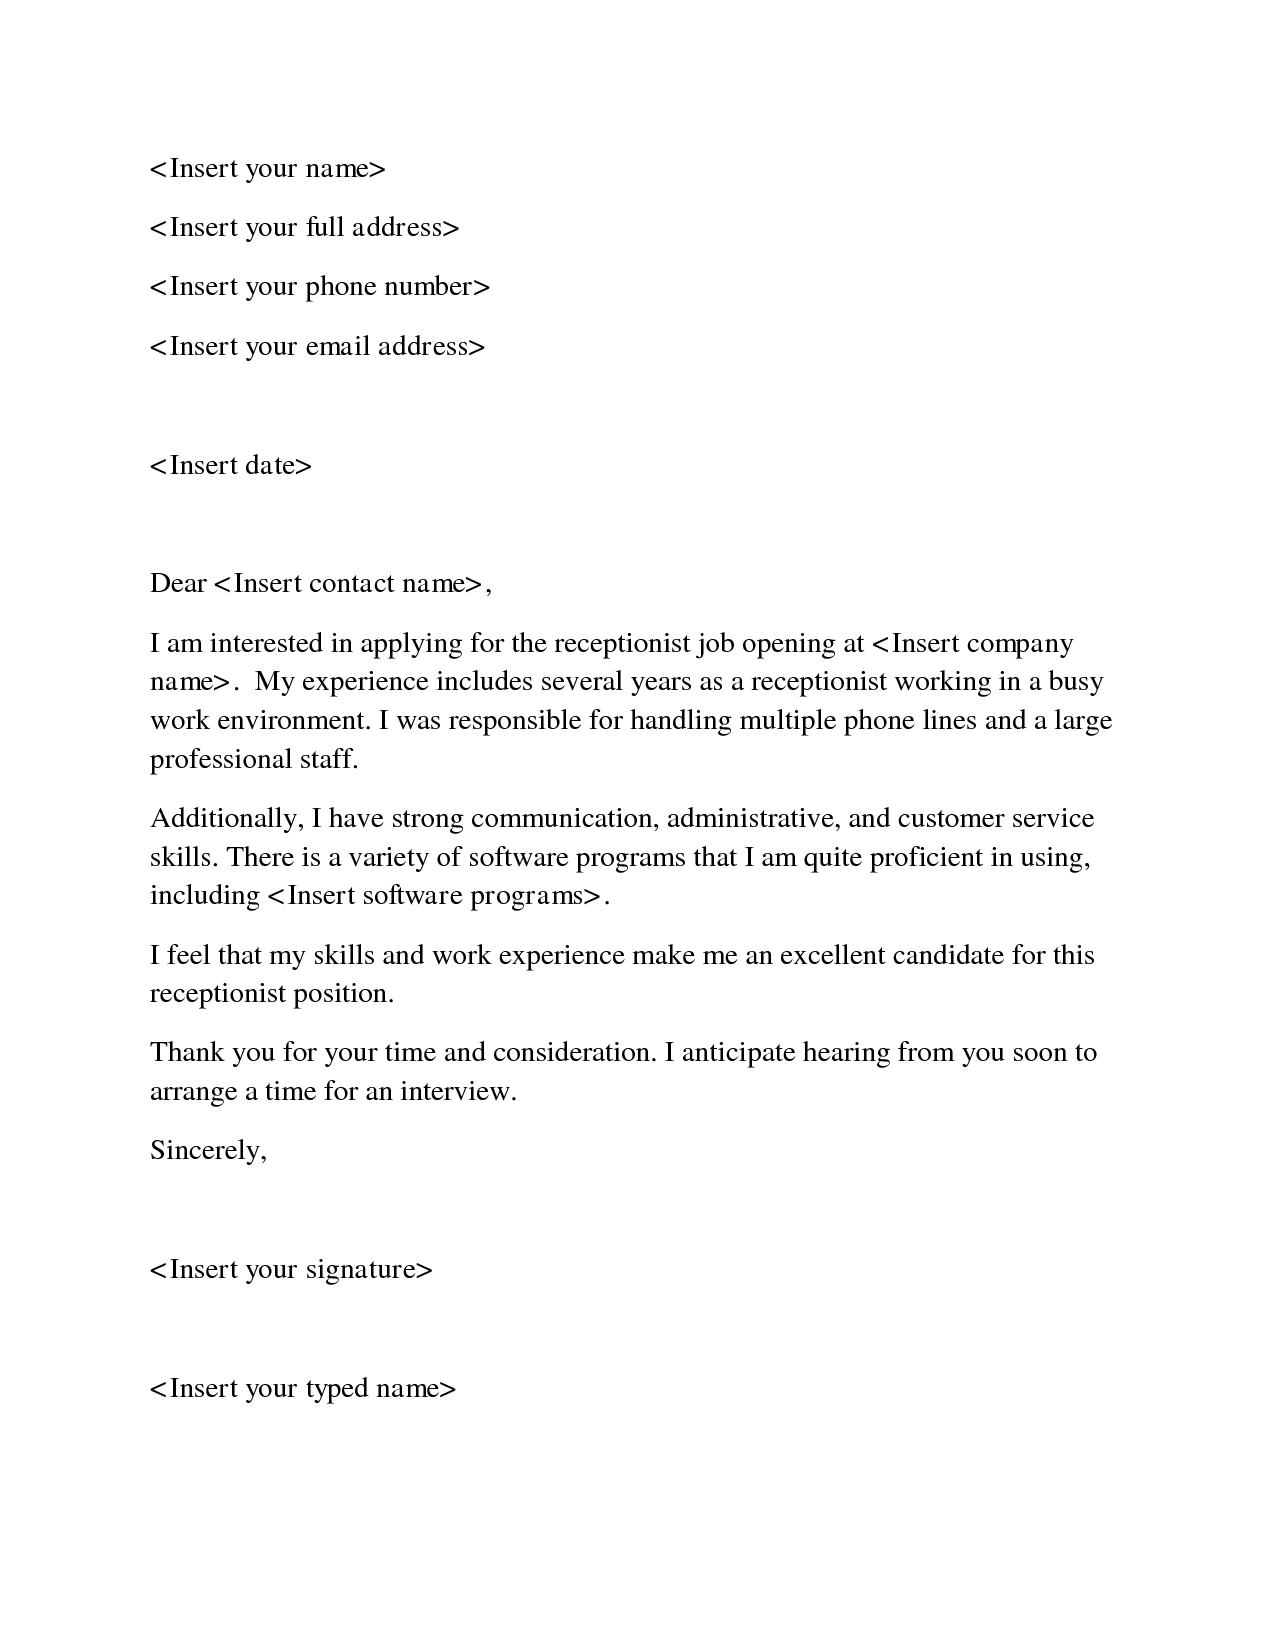 003 Essay Example Cover Letter Singular For Competition Scientific Paper Submission College Full